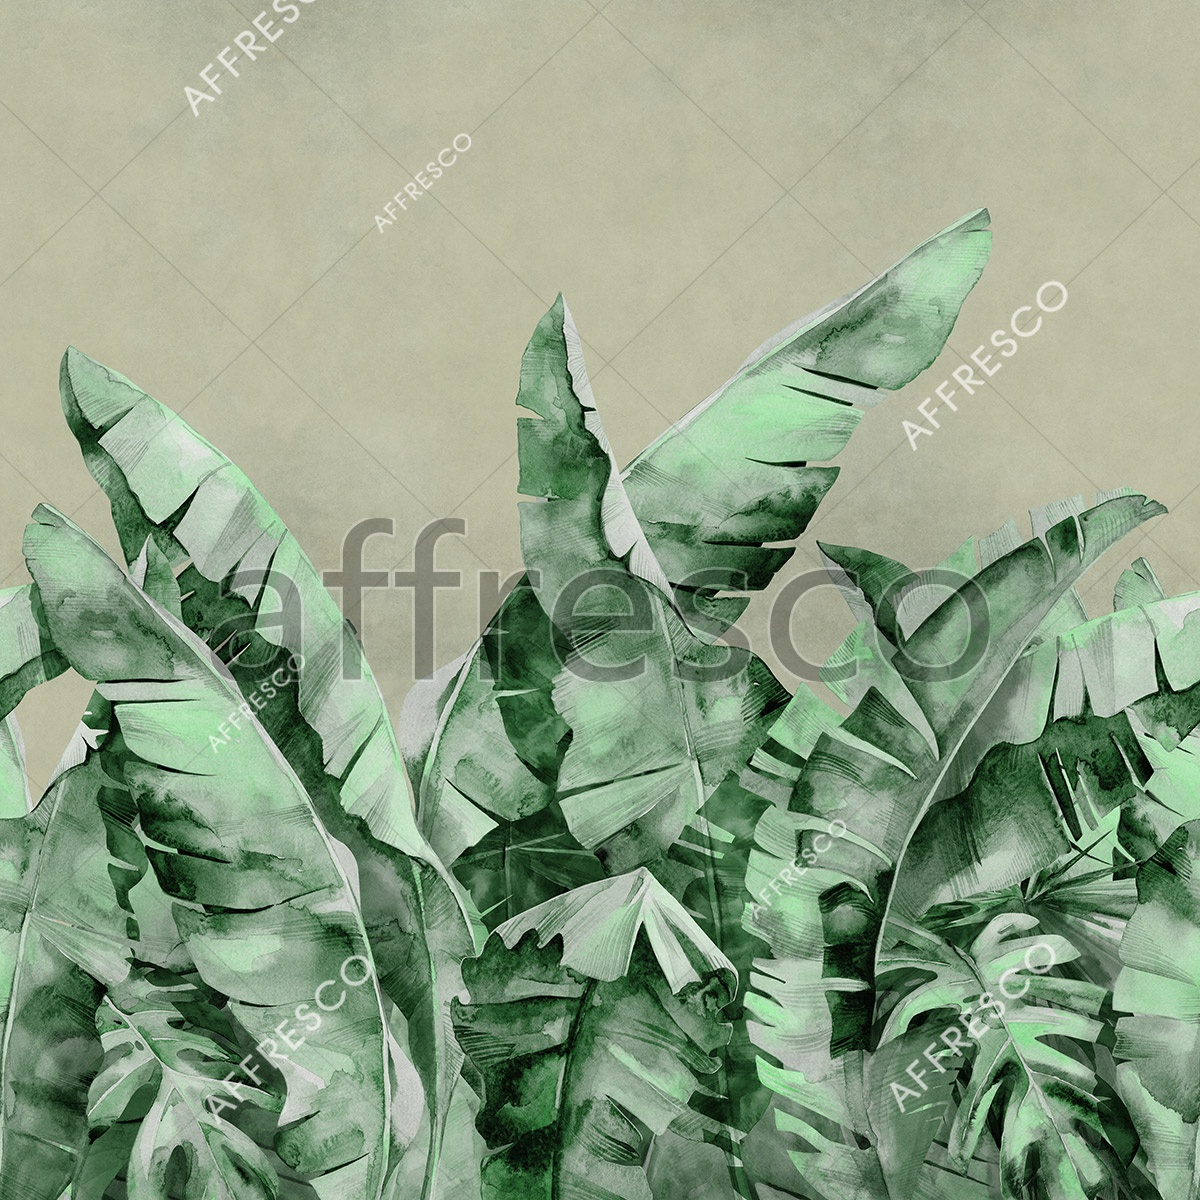 Handmade wallpaper, Handmade wallpaper | Large Palm Foliage